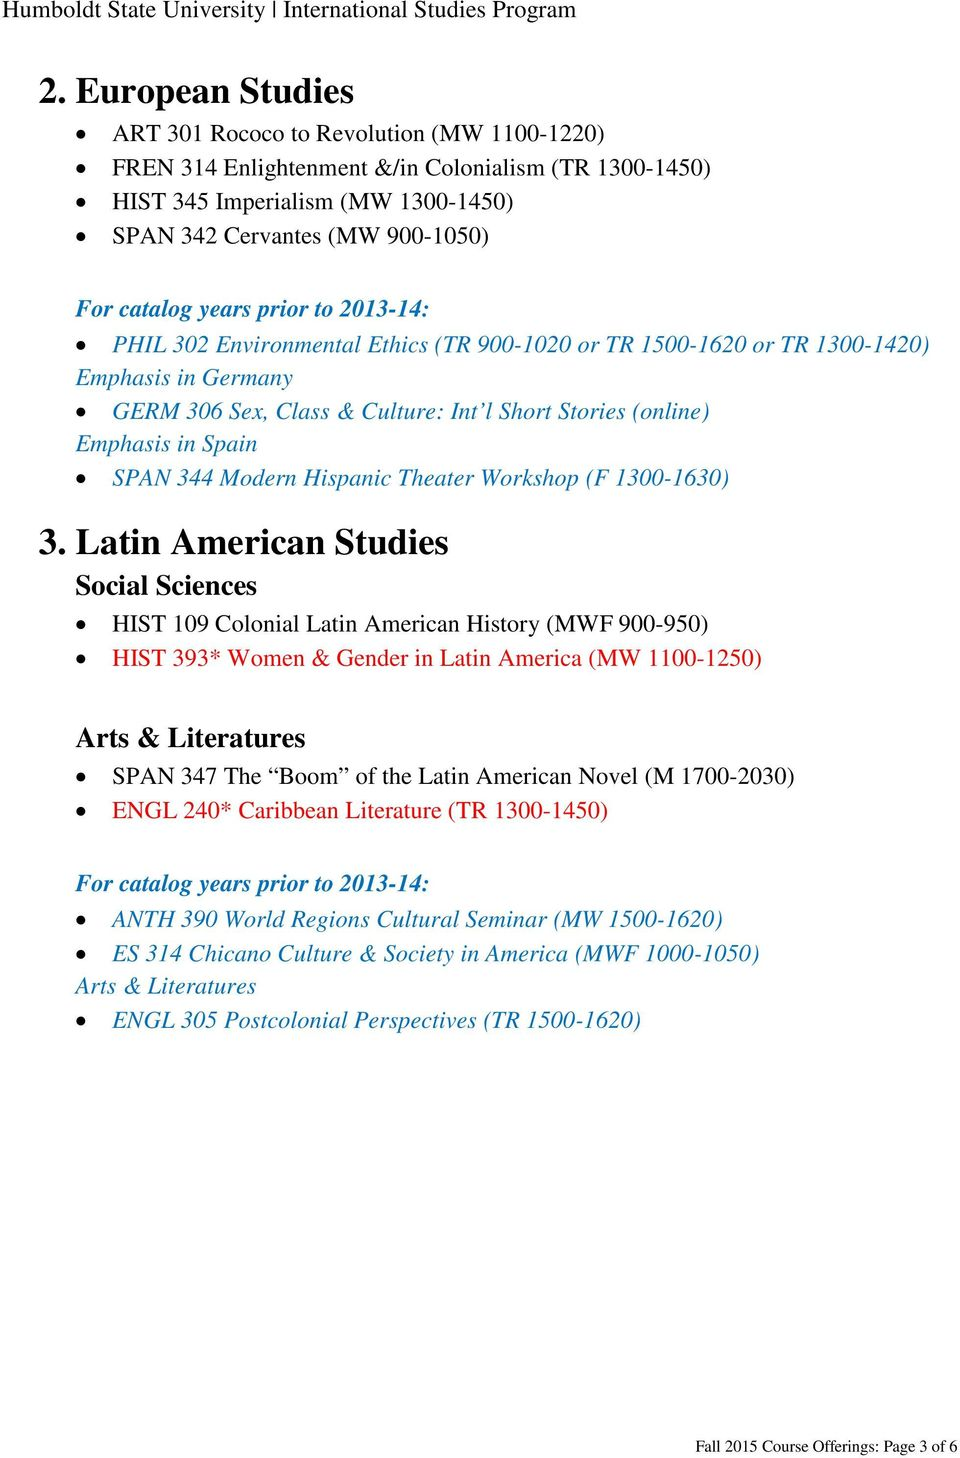 SPAN 344 Modern Hispanic Theater Workshop (F 1300-1630) 3.